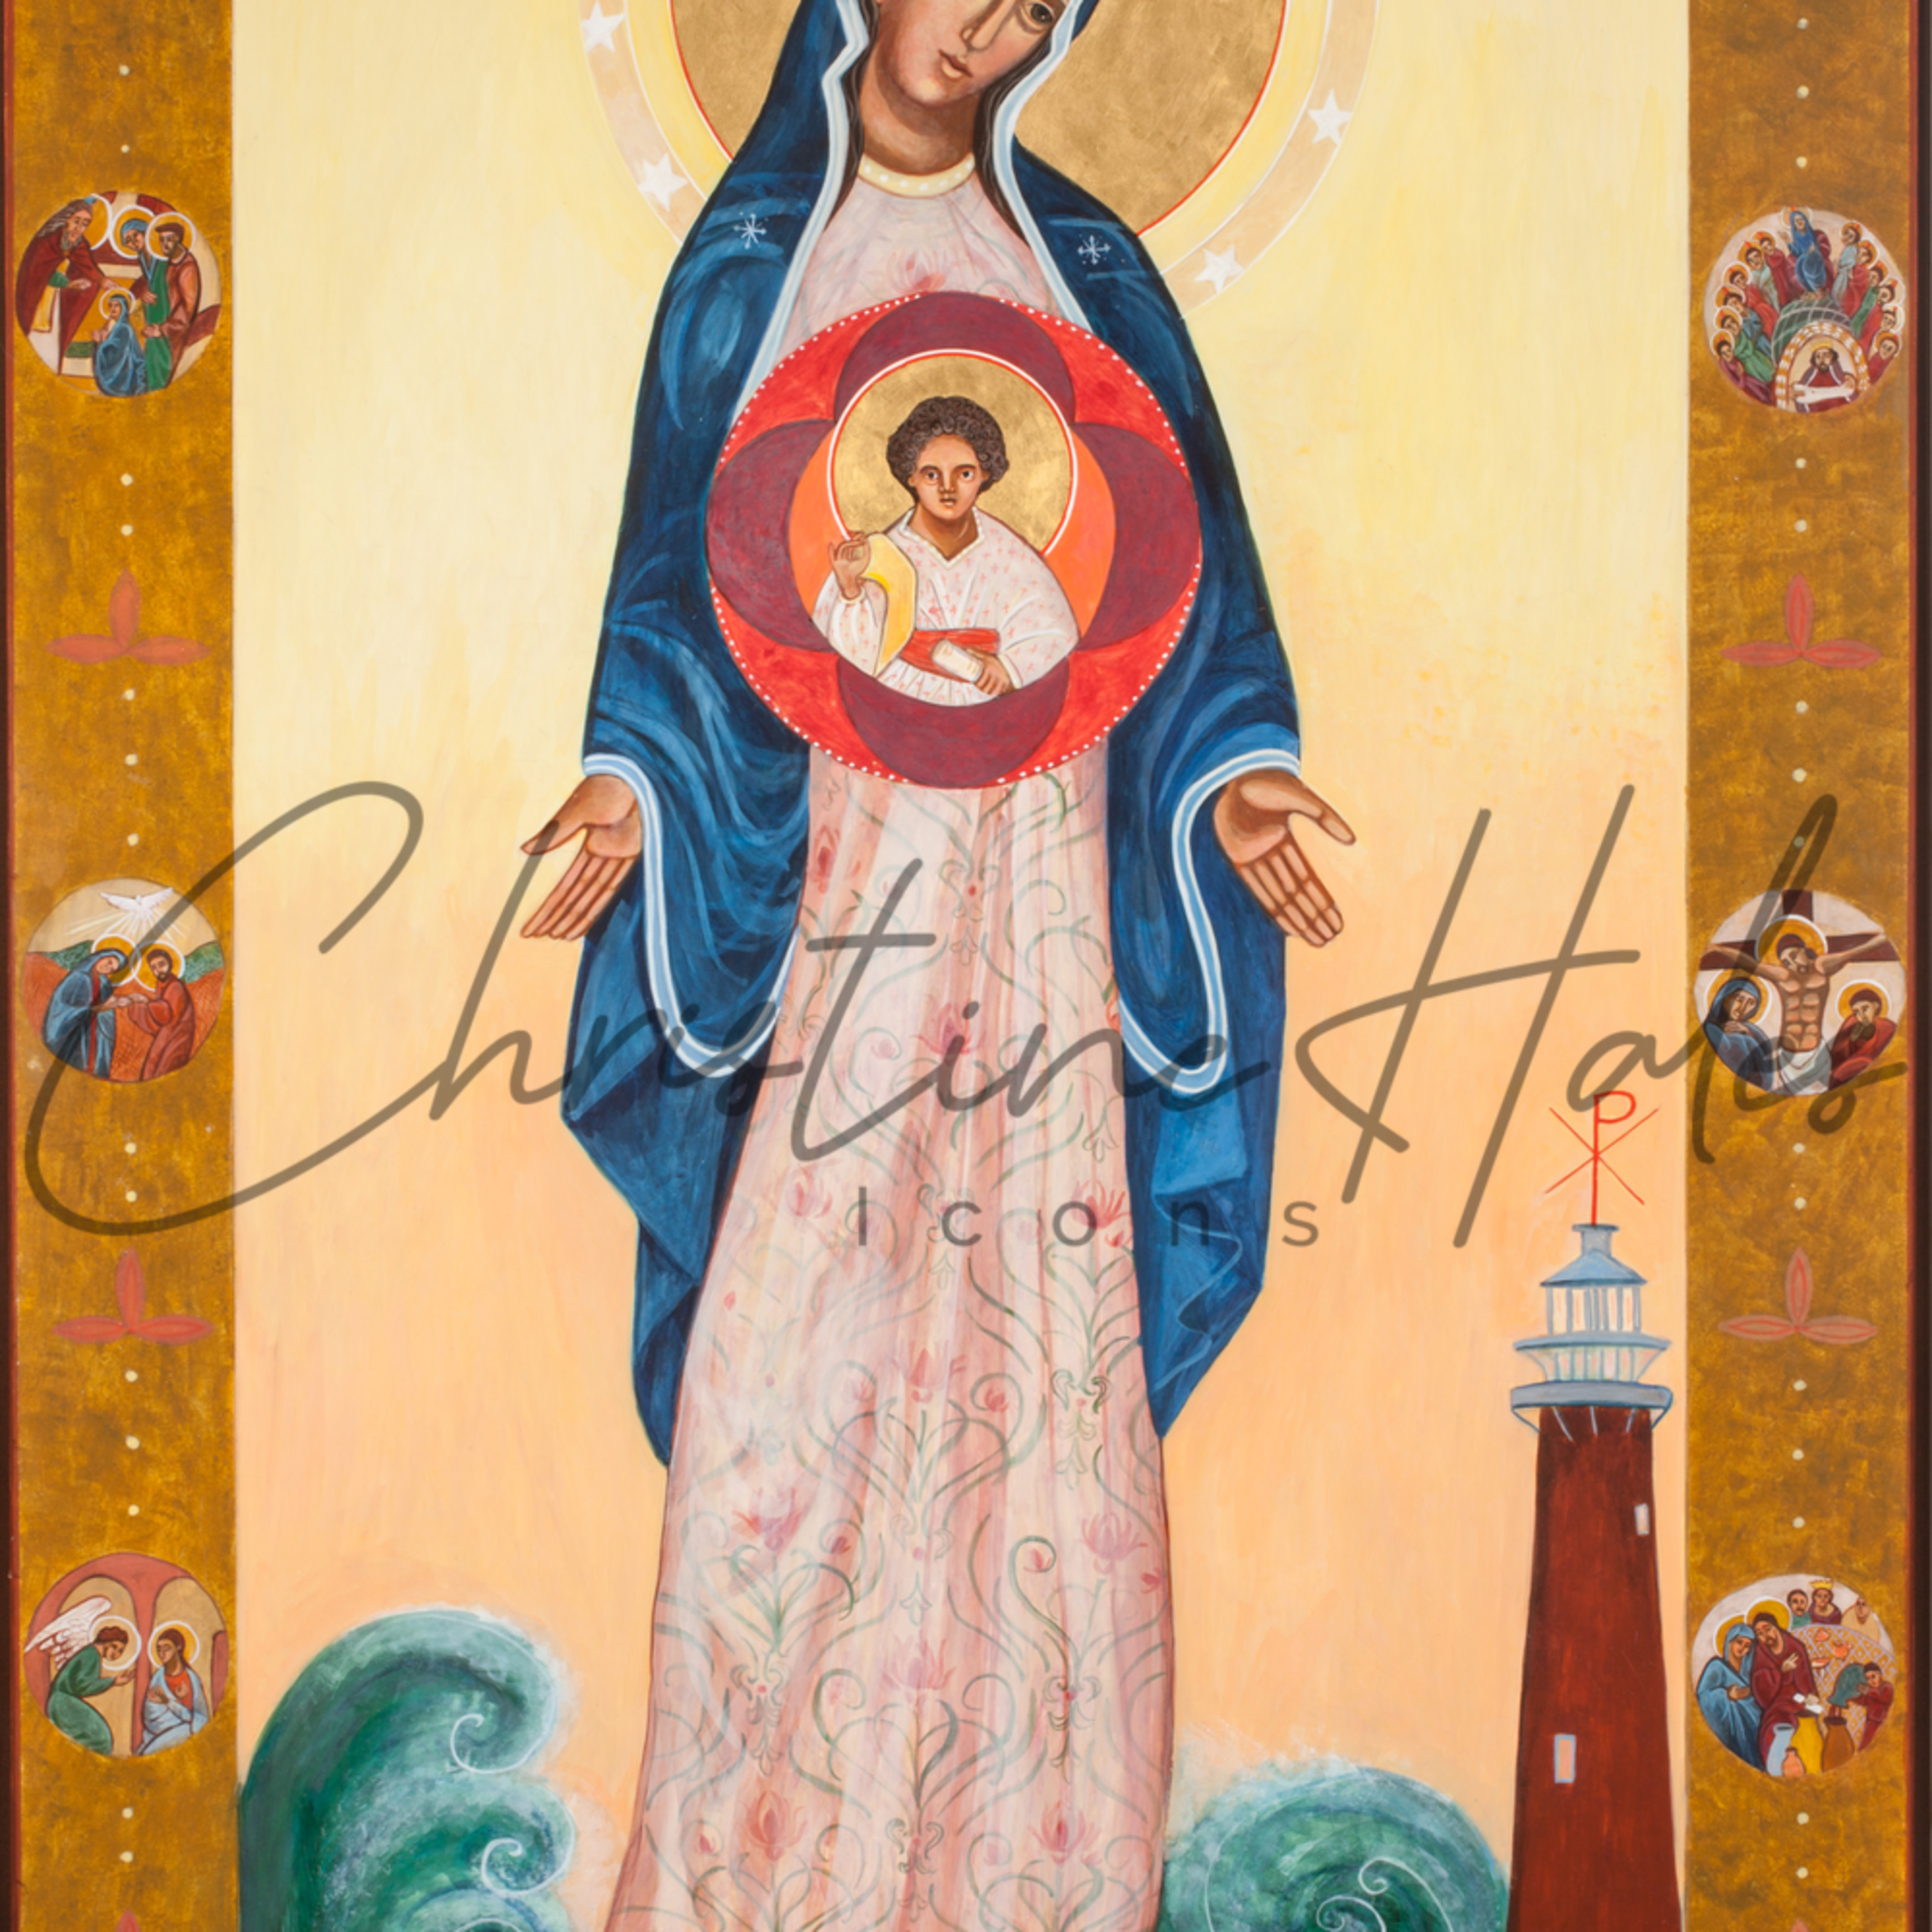 Our lady of light icon c. hales rgjxwg